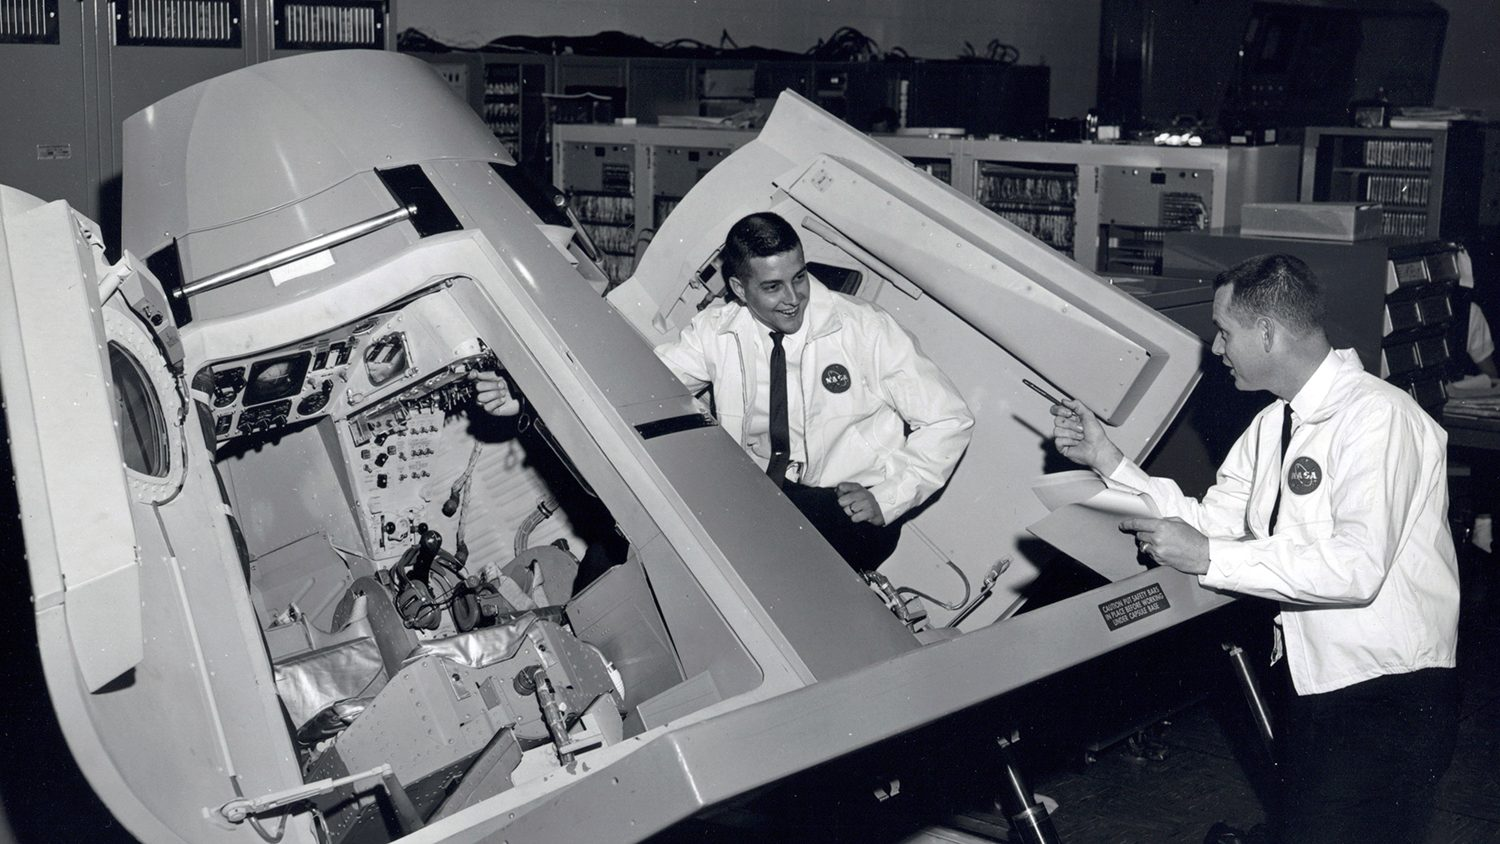 A black-and-white photo of two men working on a space shuttle capsule